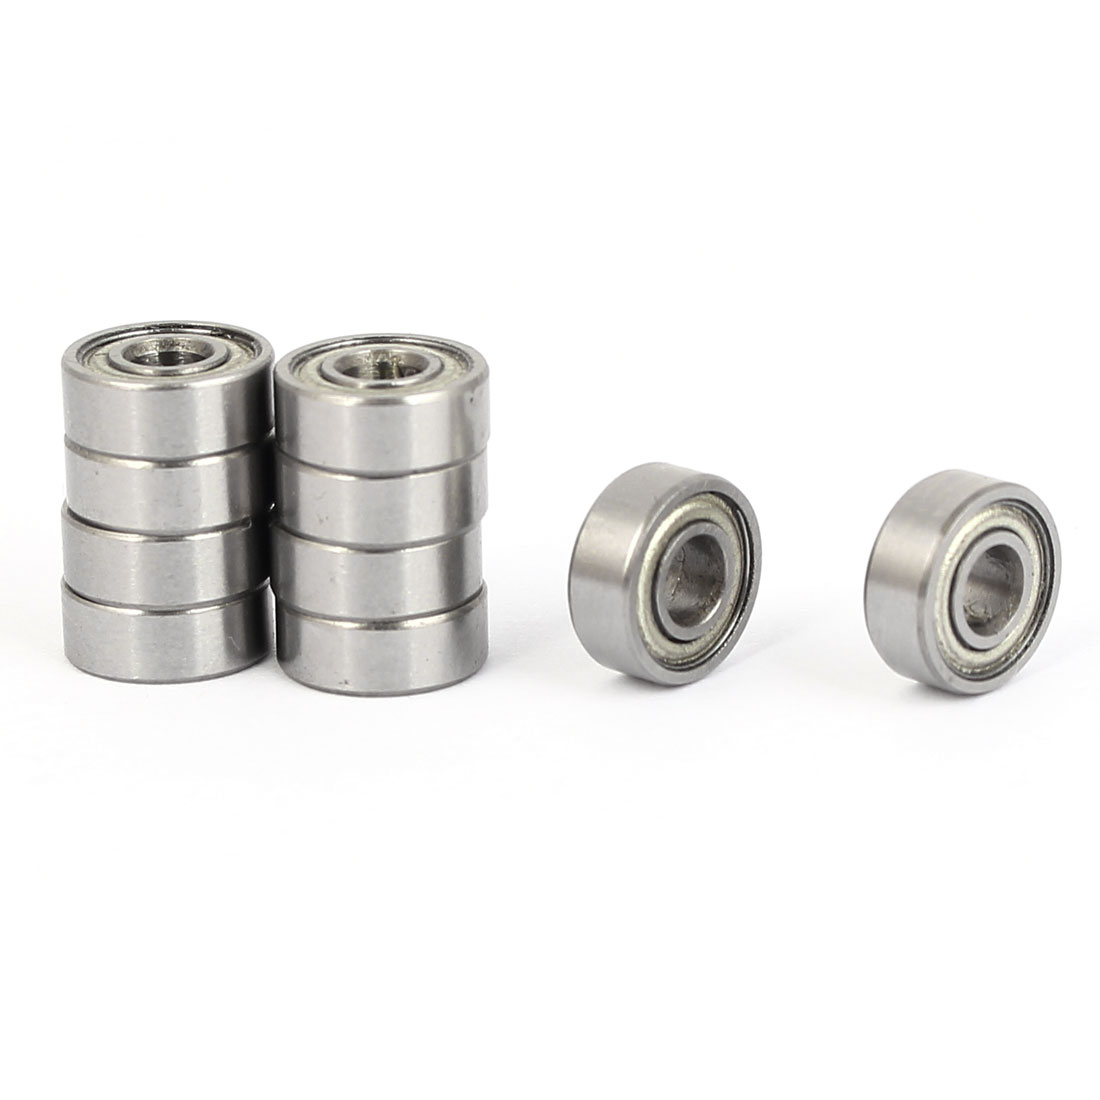 ZZMR83 Deep Groove Ball Bearing 8mm OD 3mm Bore Diameter 10pcs